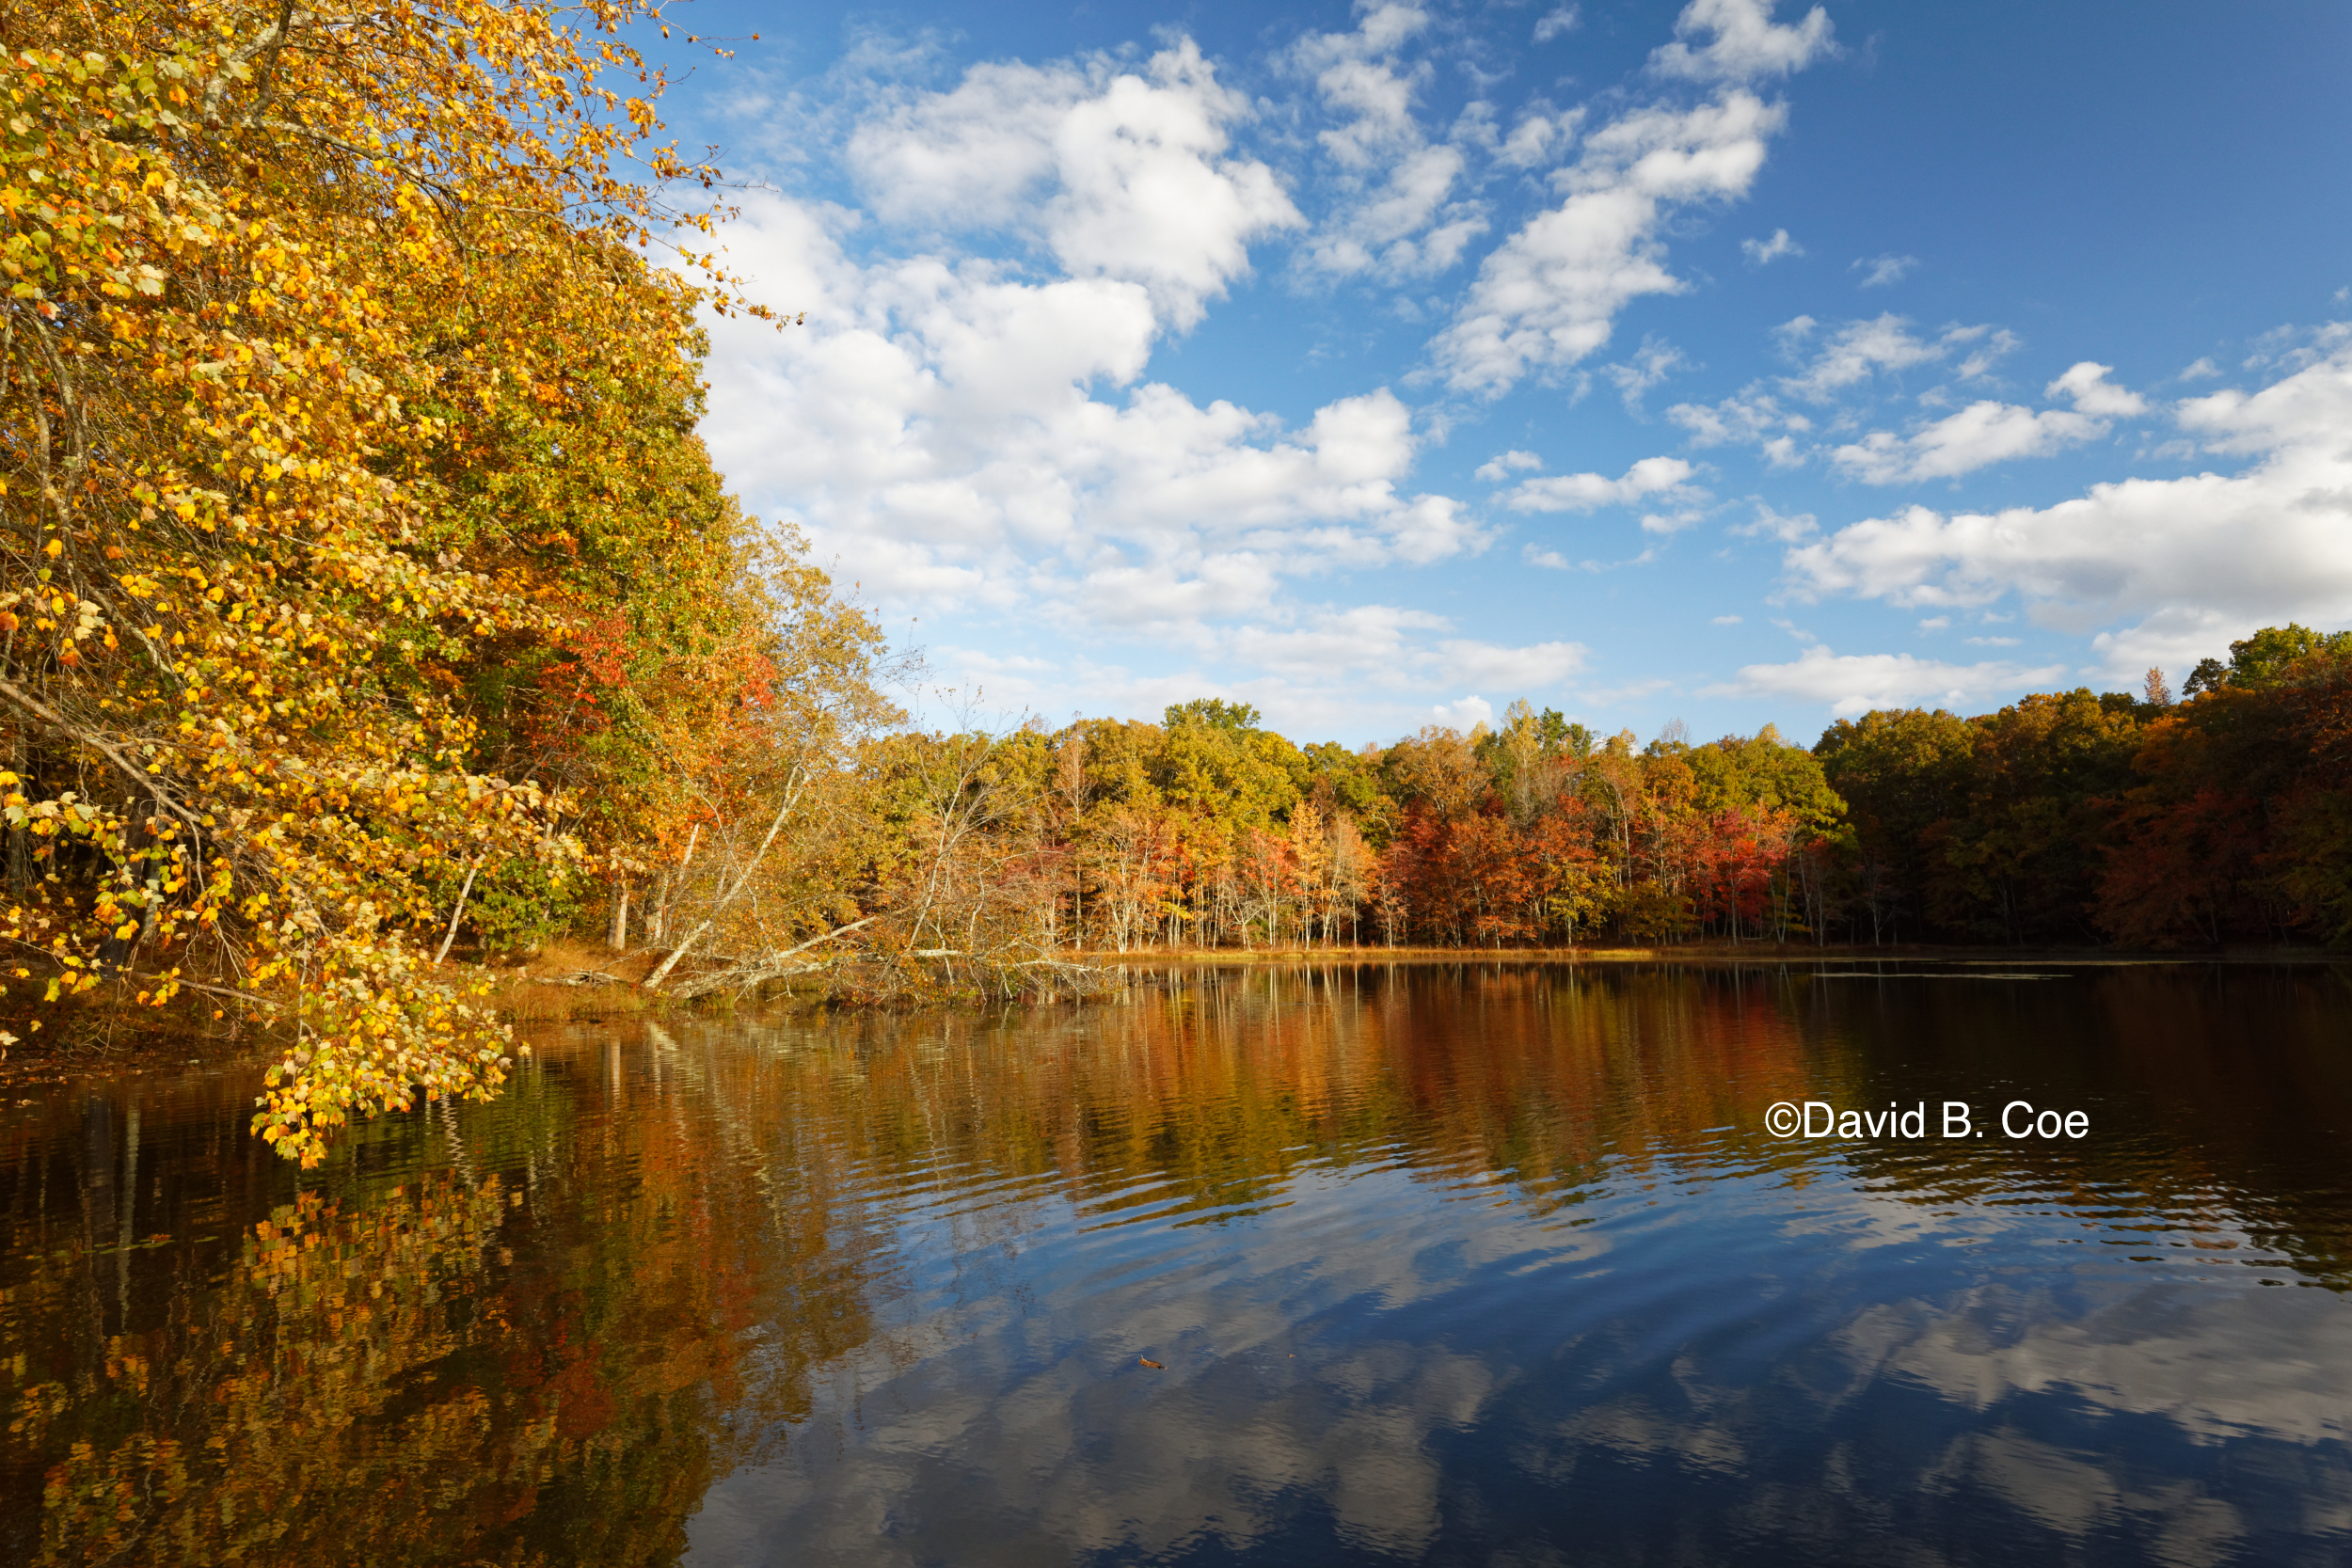 Foliage Reflections, Lake Dimmick (Wide Angle), by David B. Coe